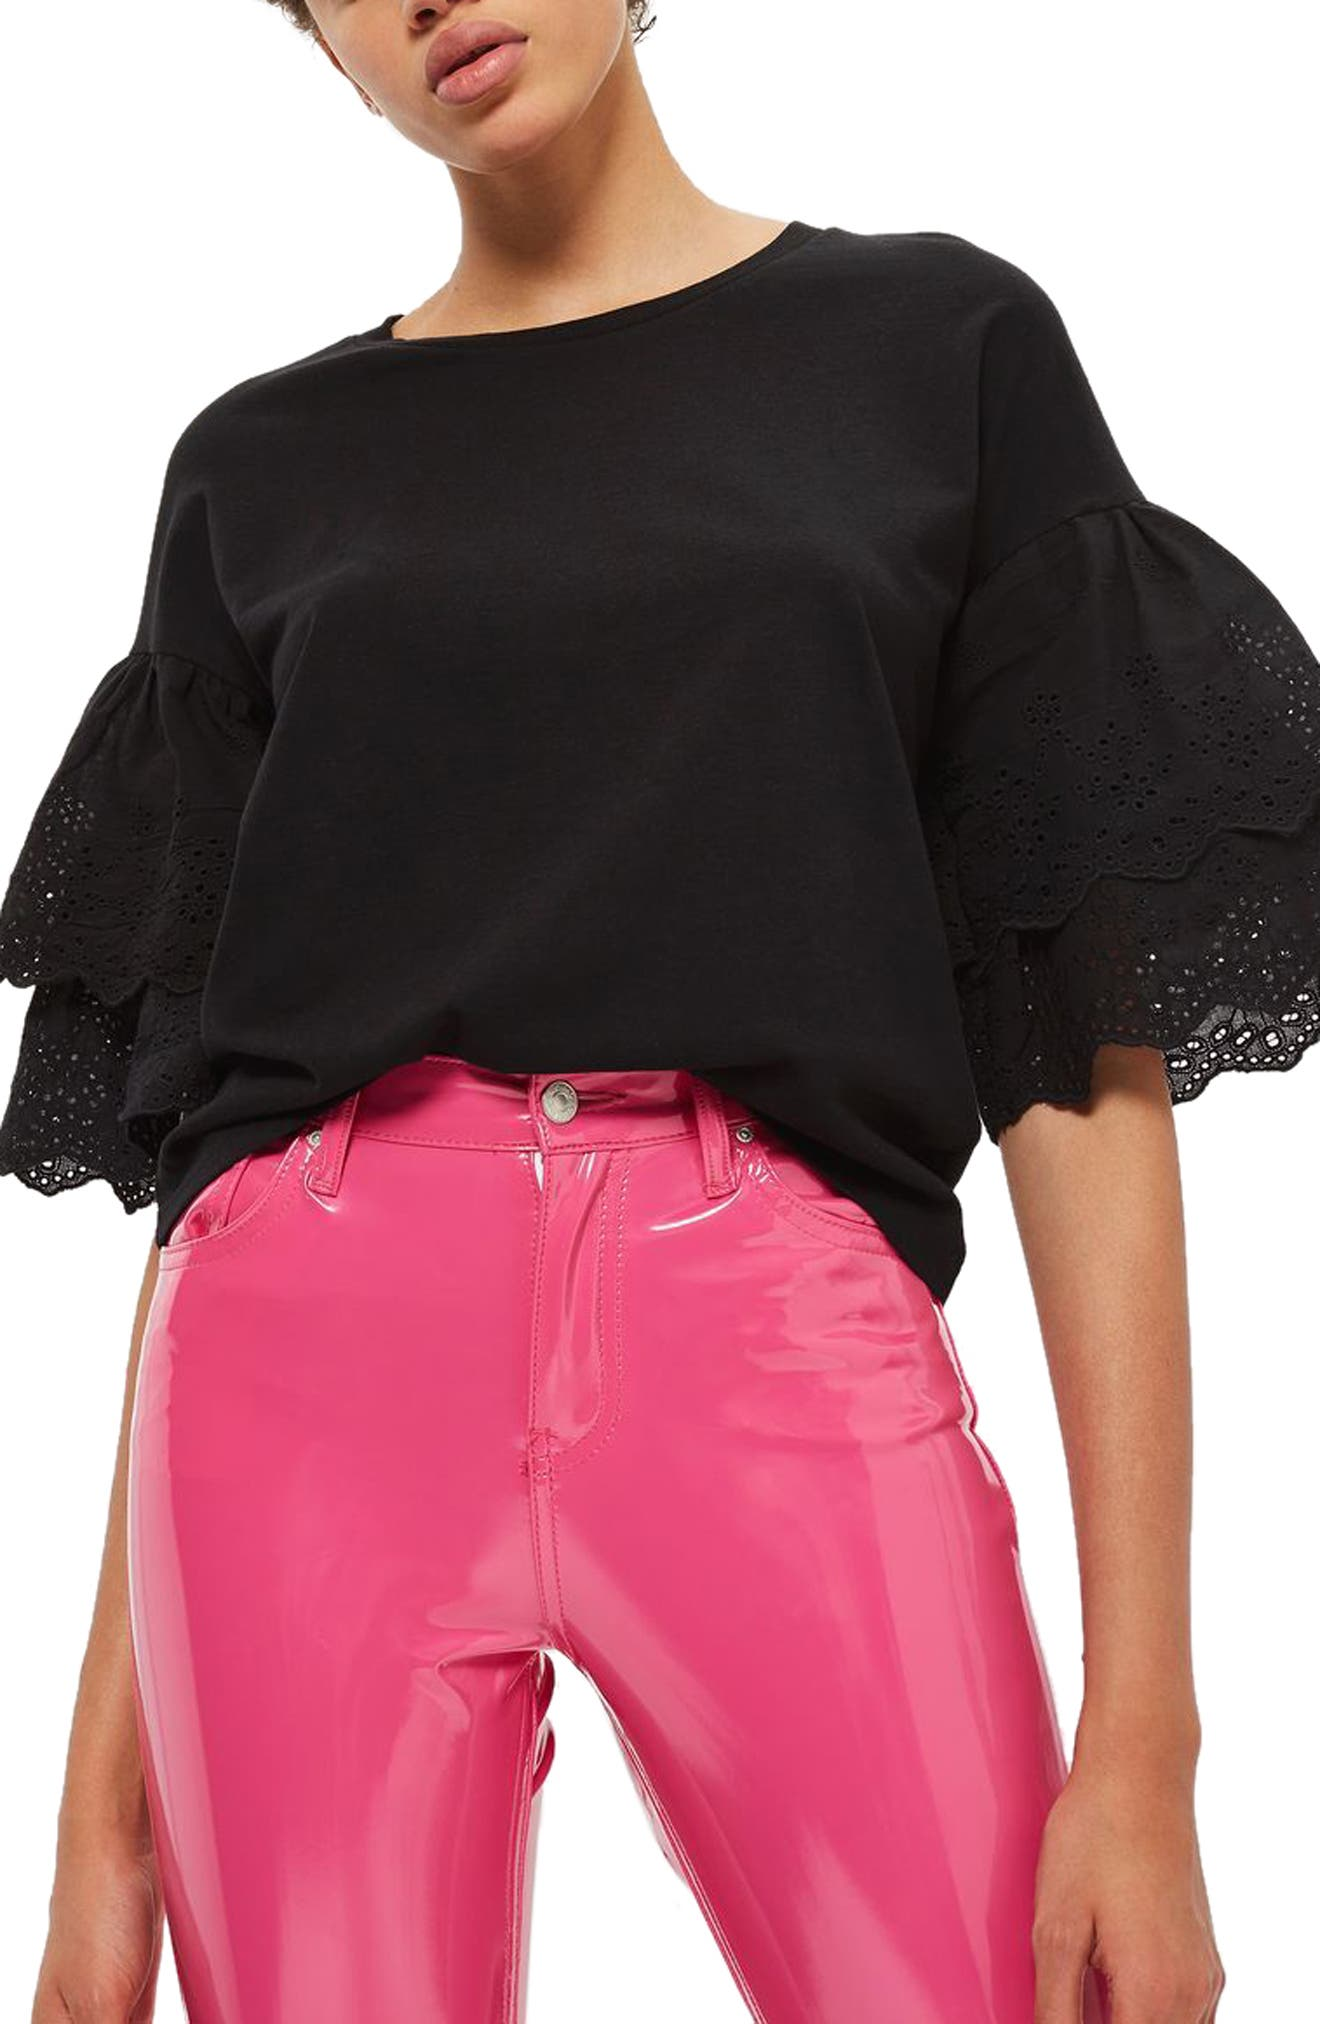 Topshop Eyelet Layer Sleeve Tee T-Shirt (Regular & Petite)